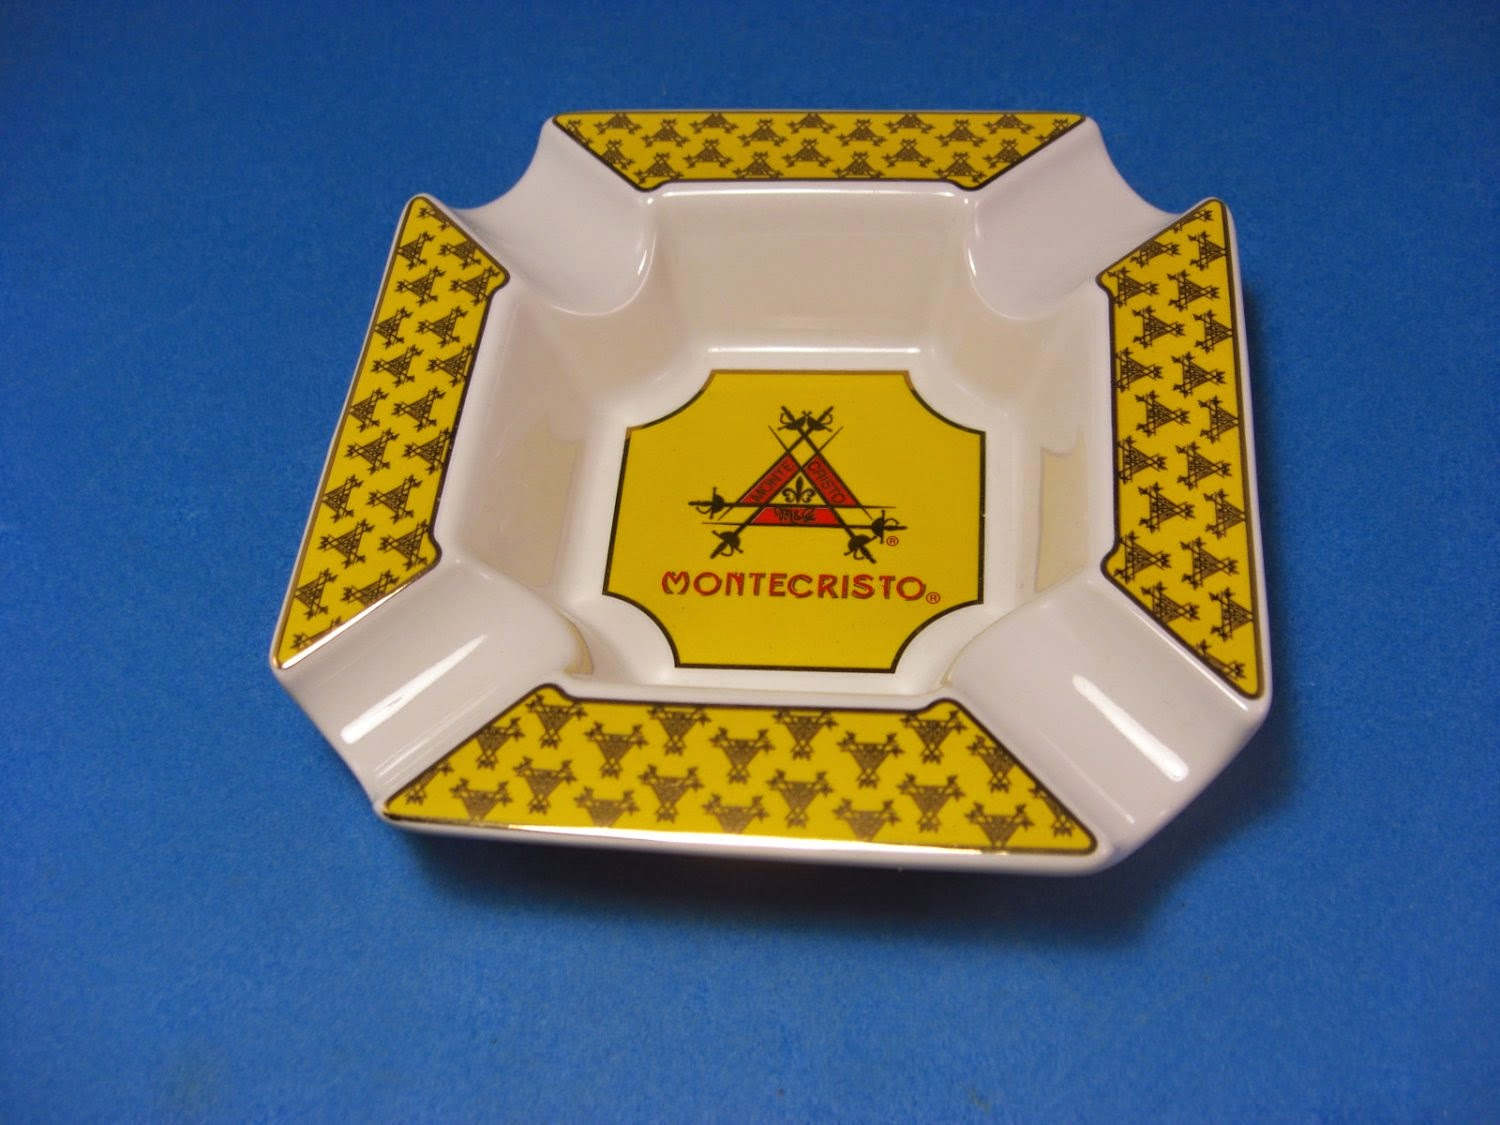 http://bargaincart.ecrater.com/p/22052065/montecristo-yellow-and-white-cigar-ashtray